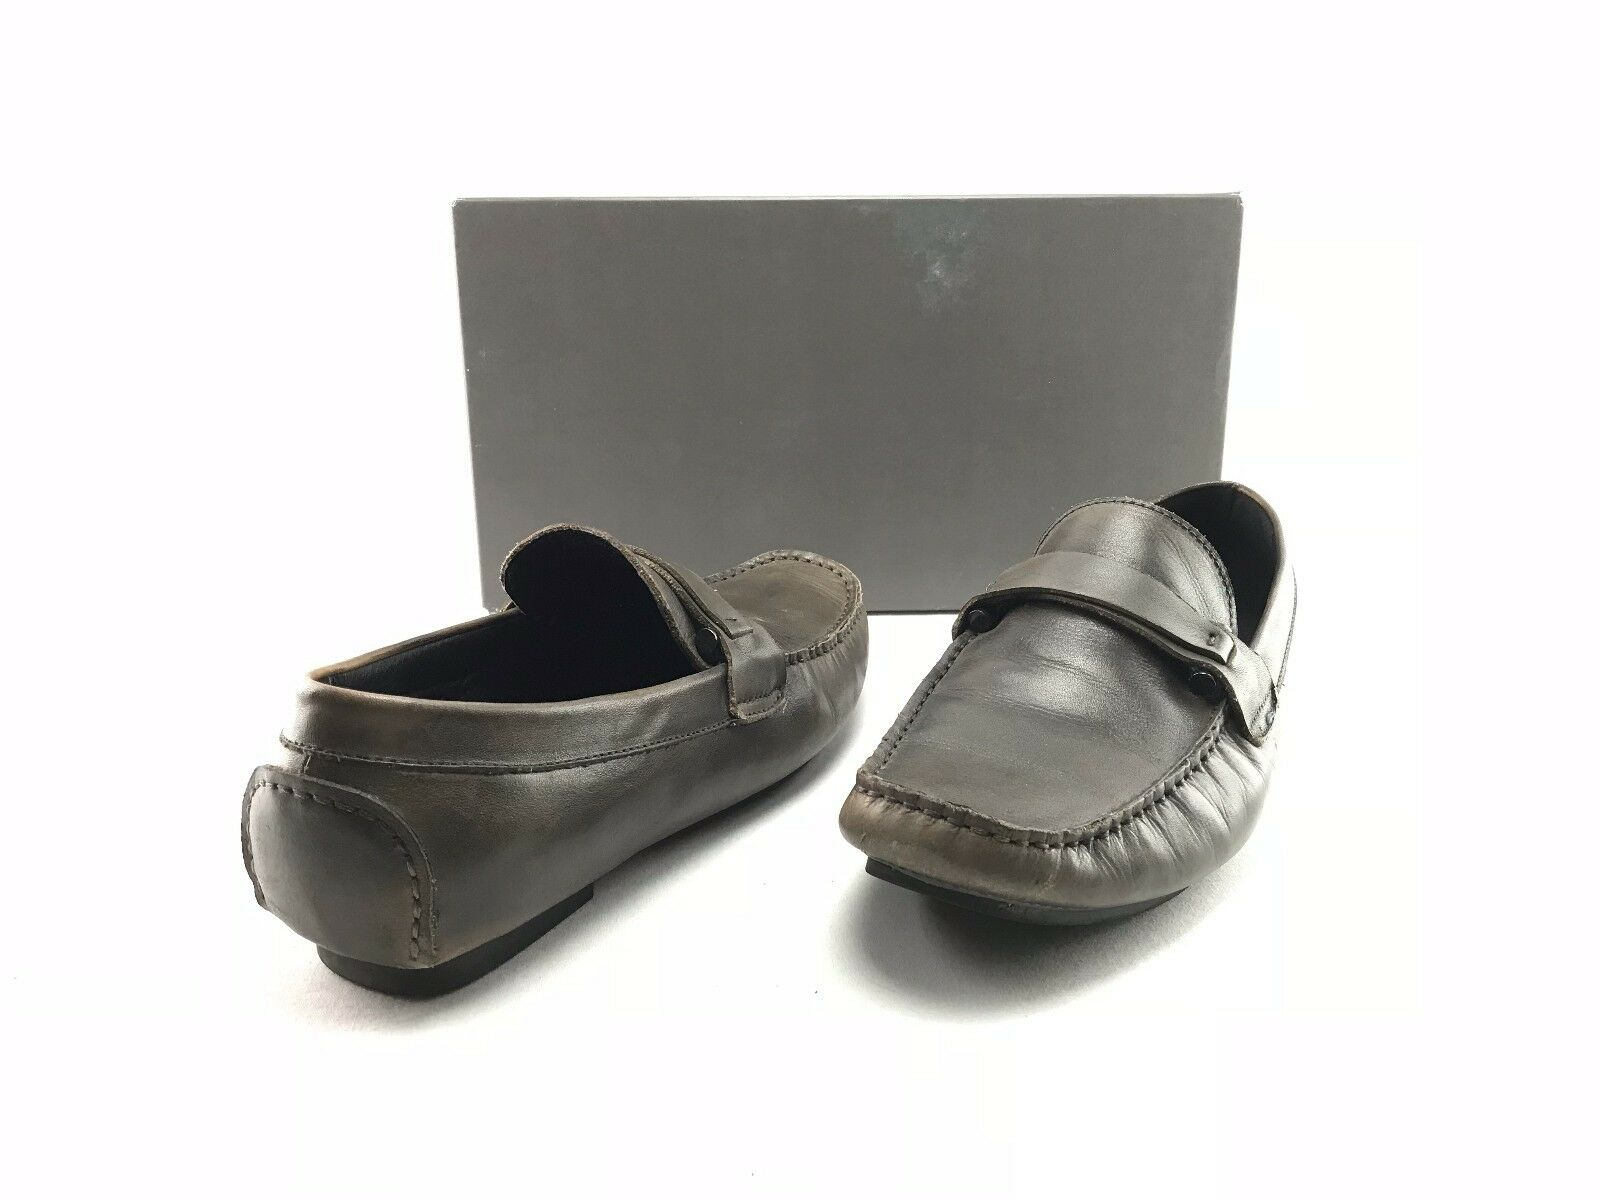 Kenneth Cole Reaction Bad-Ge Mens Gray Leather Slip-On Loafers US 8 M Shoes A759